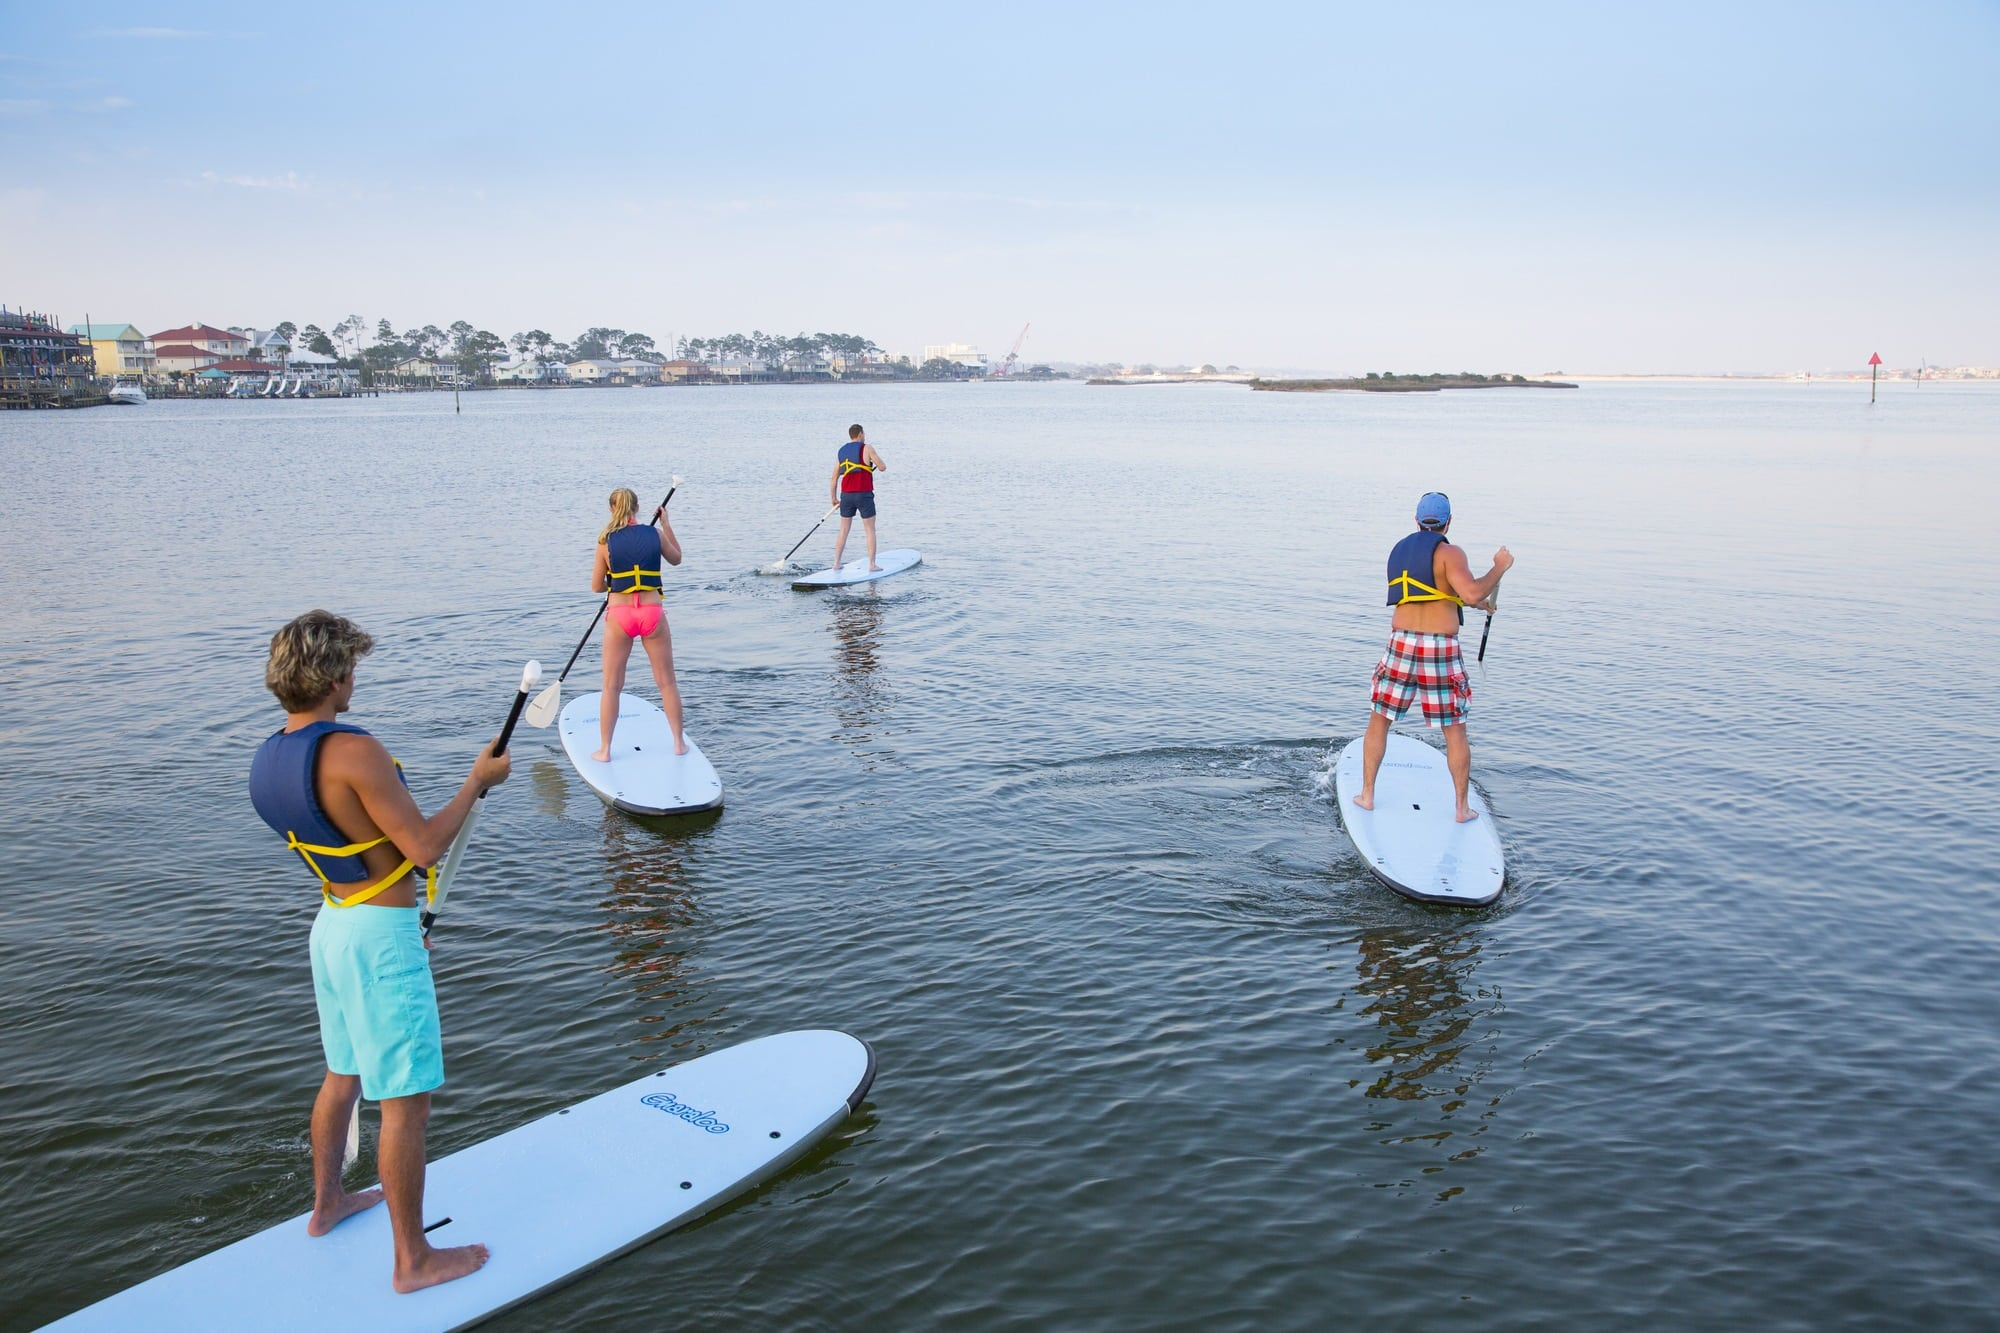 Stand up paddle boarding is a fun way to explore Gulf Shores with kids (